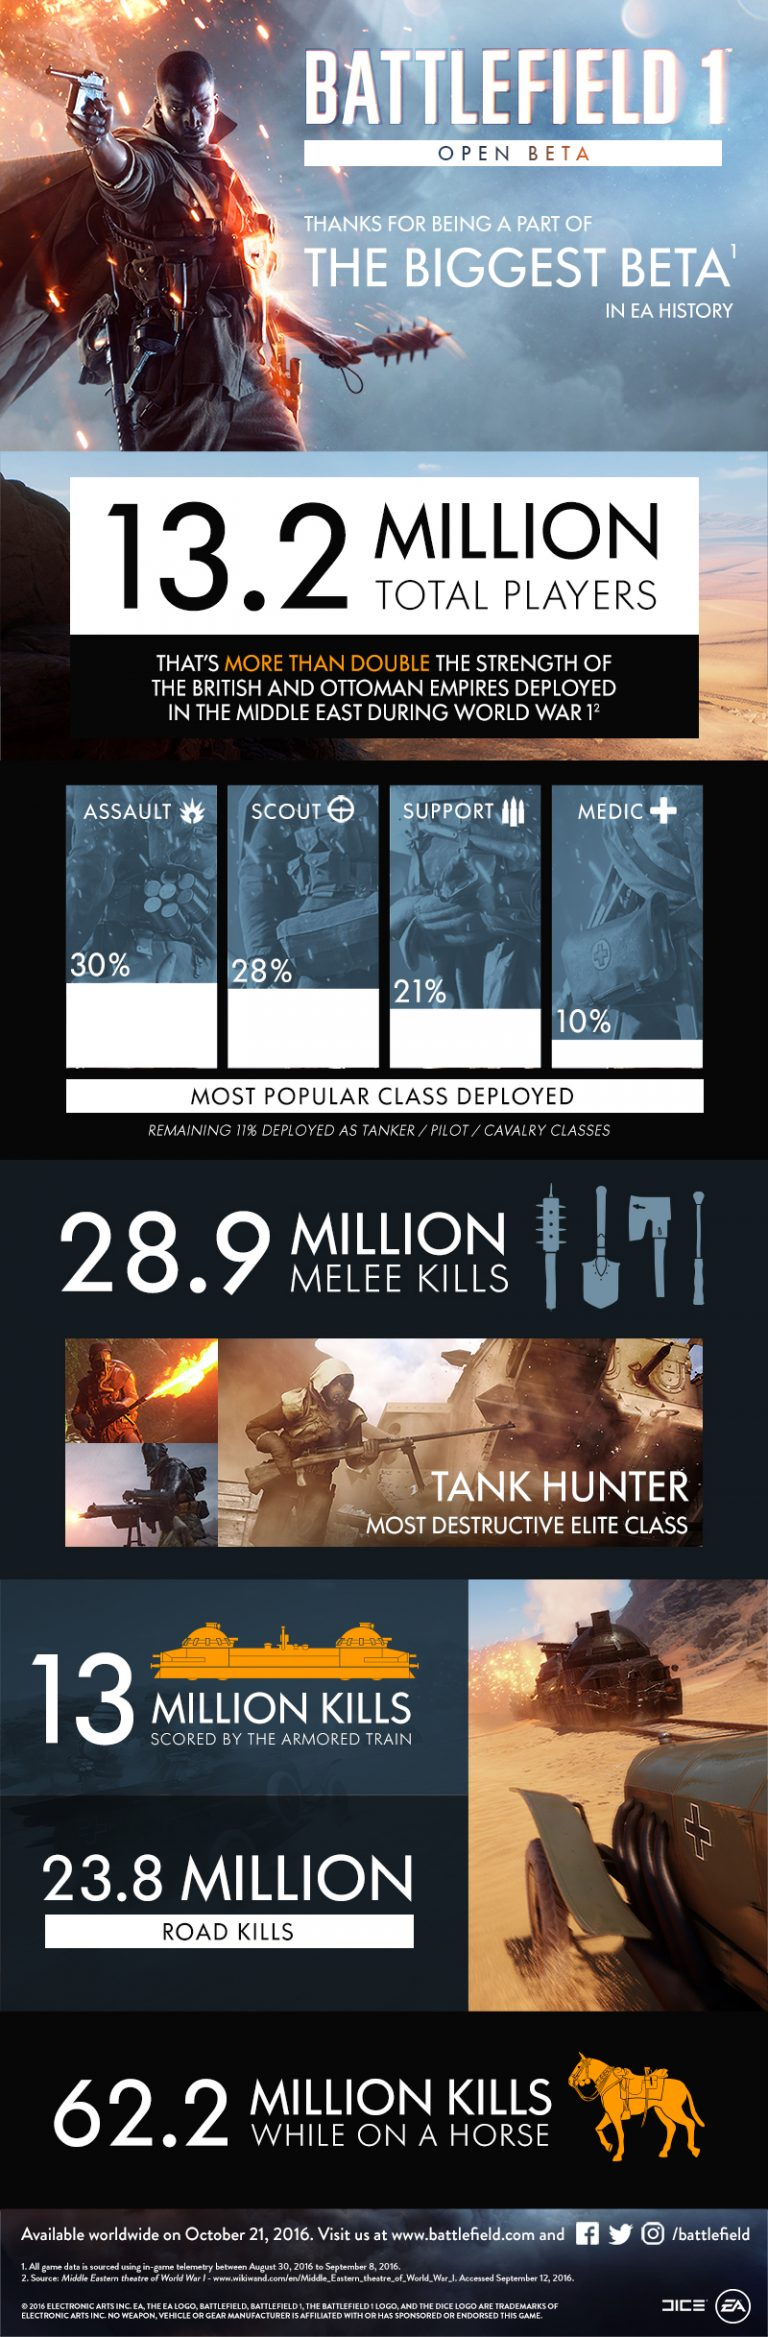 bf1-betainfographic_final-768x2337